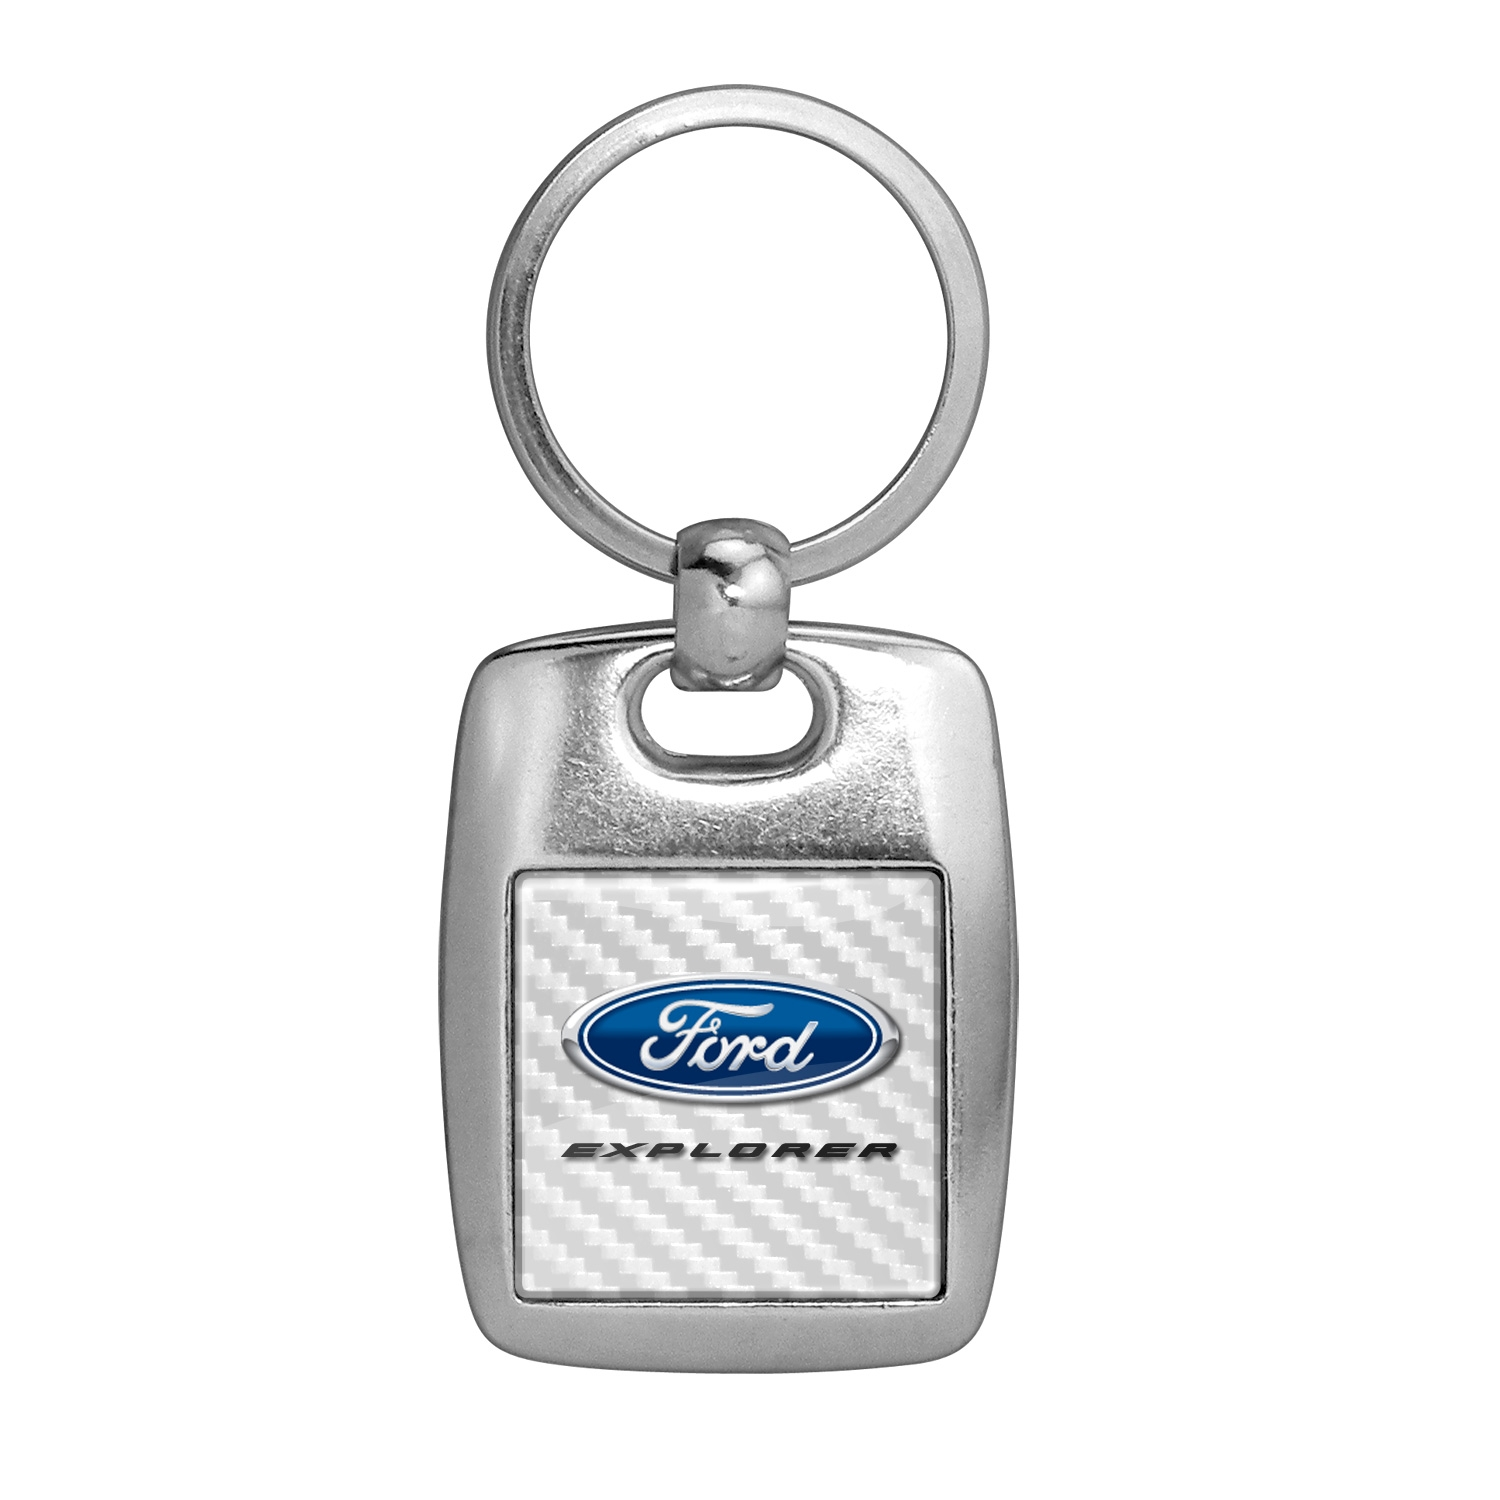 Ford Expedition White Carbon Fiber Backing Brush Metal Key Chain